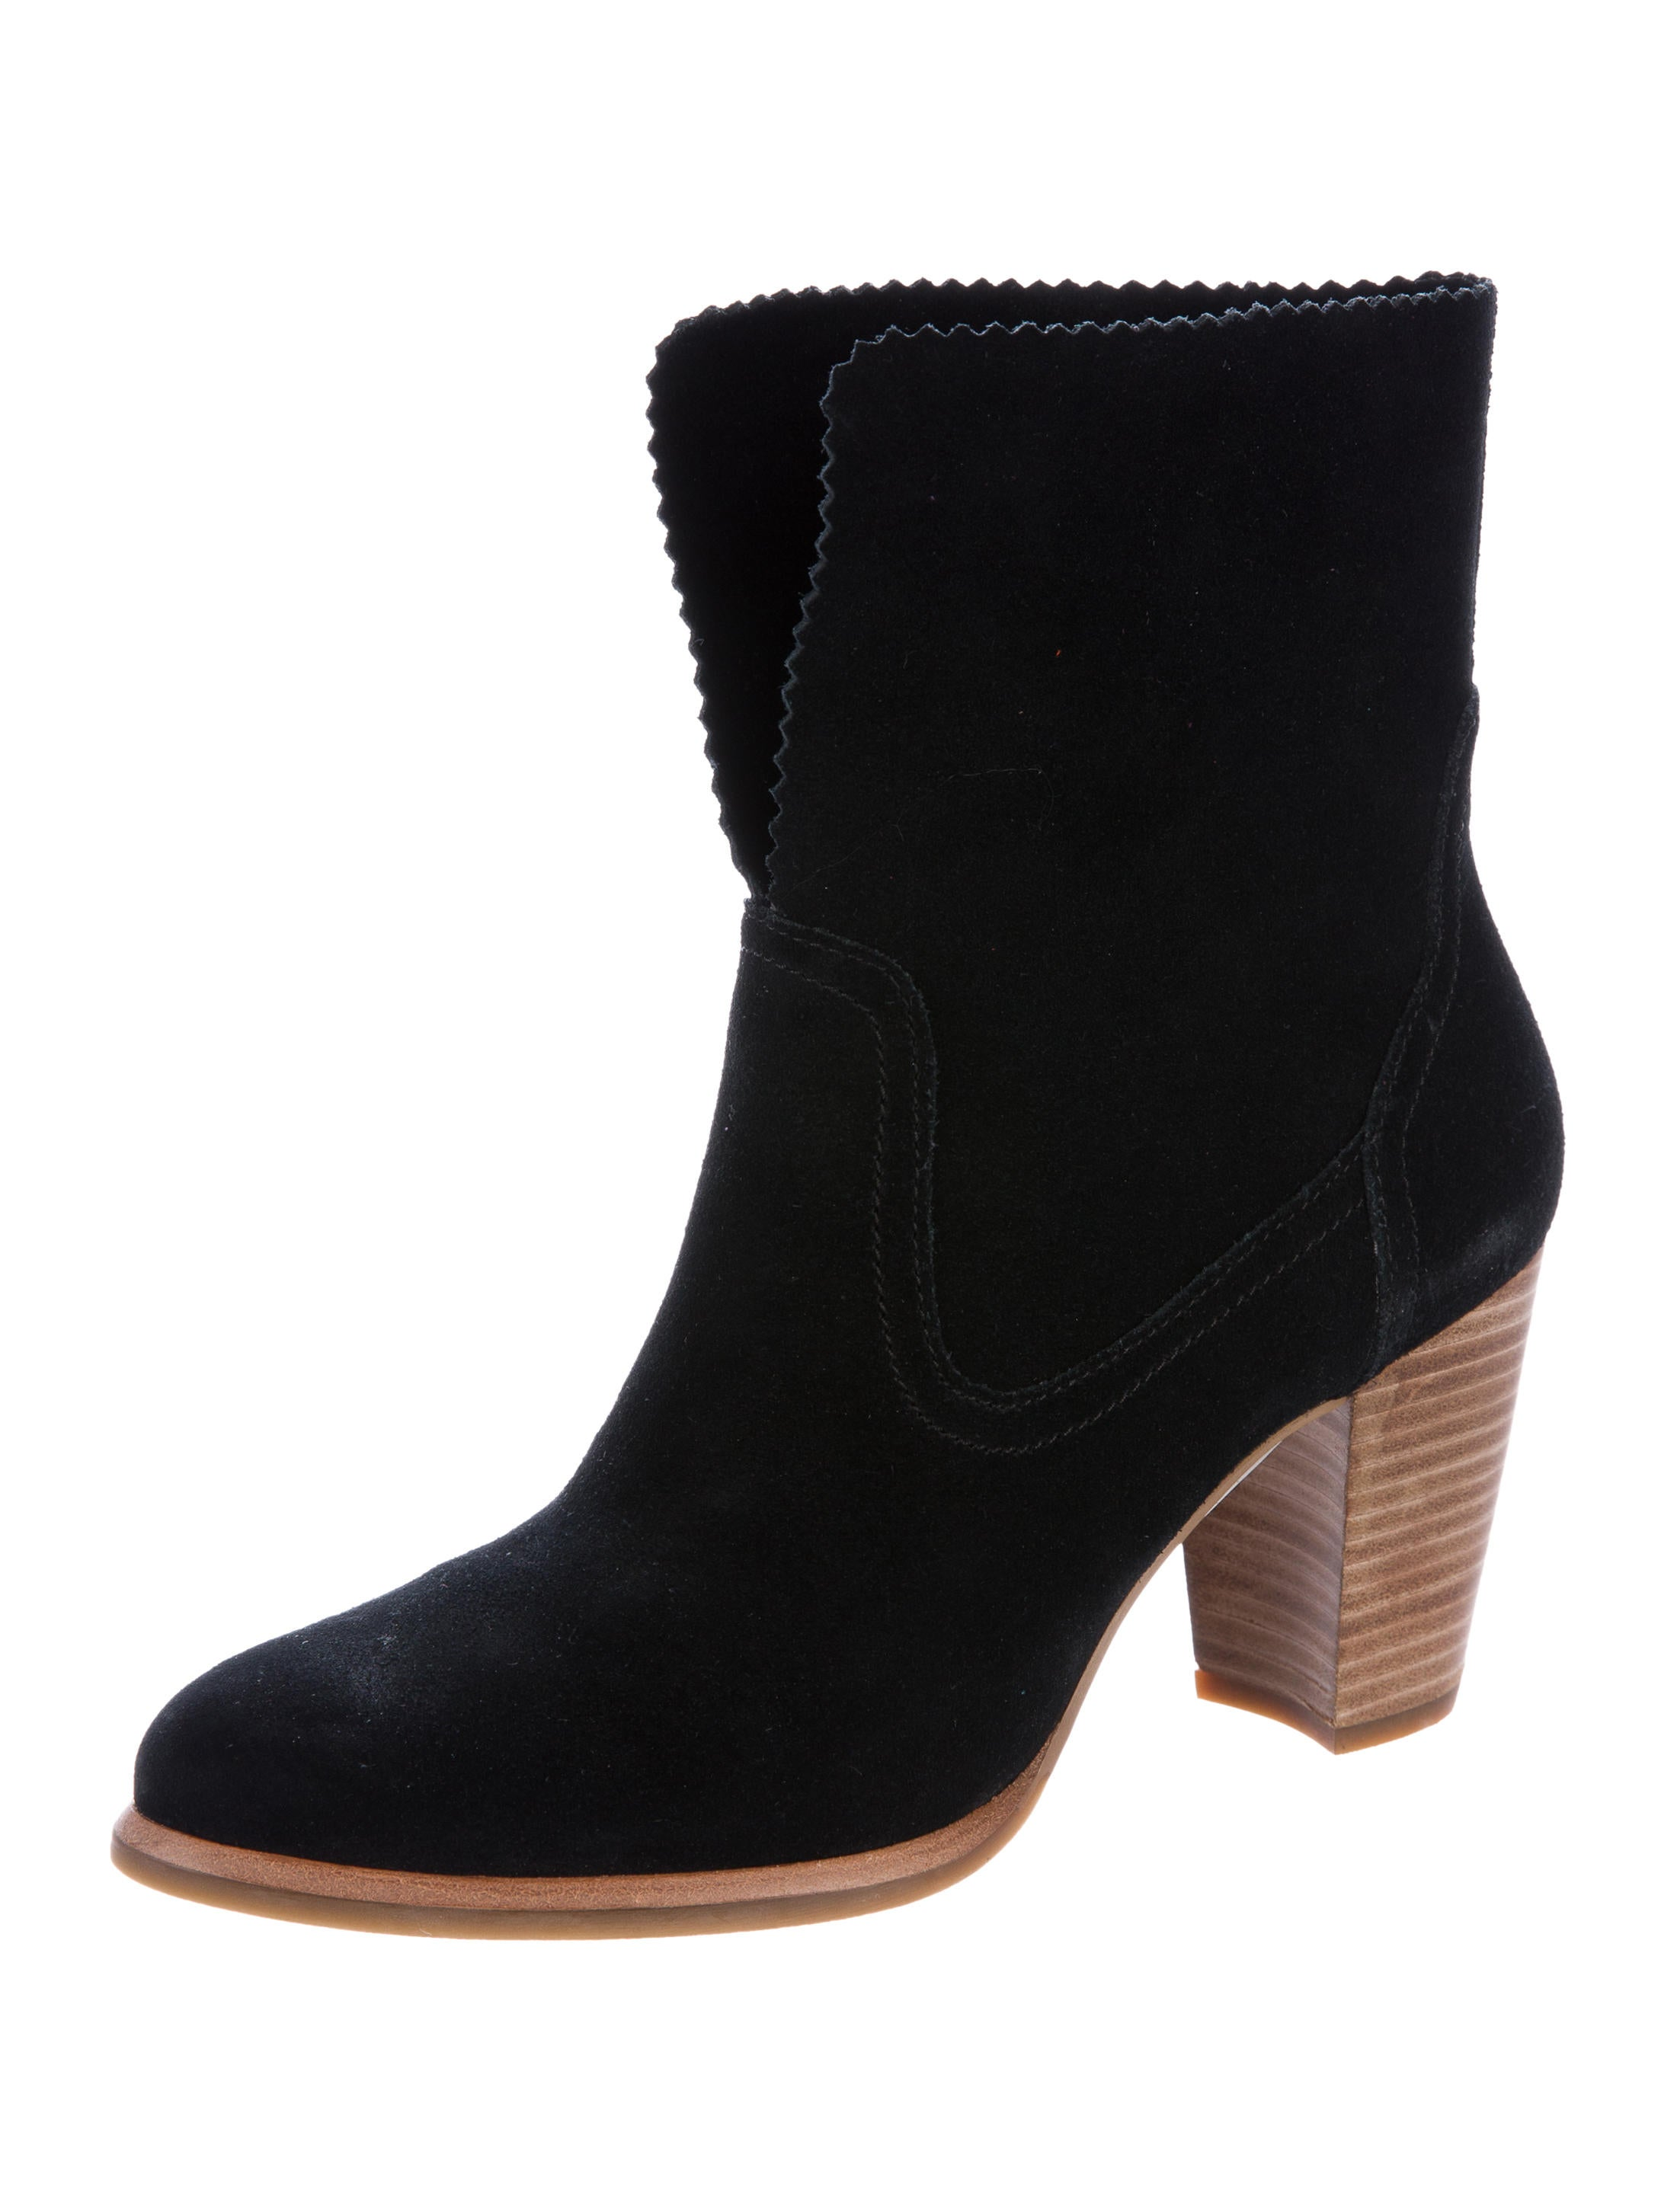 ugg australia suede ankle boots shoes wuugg22335 the